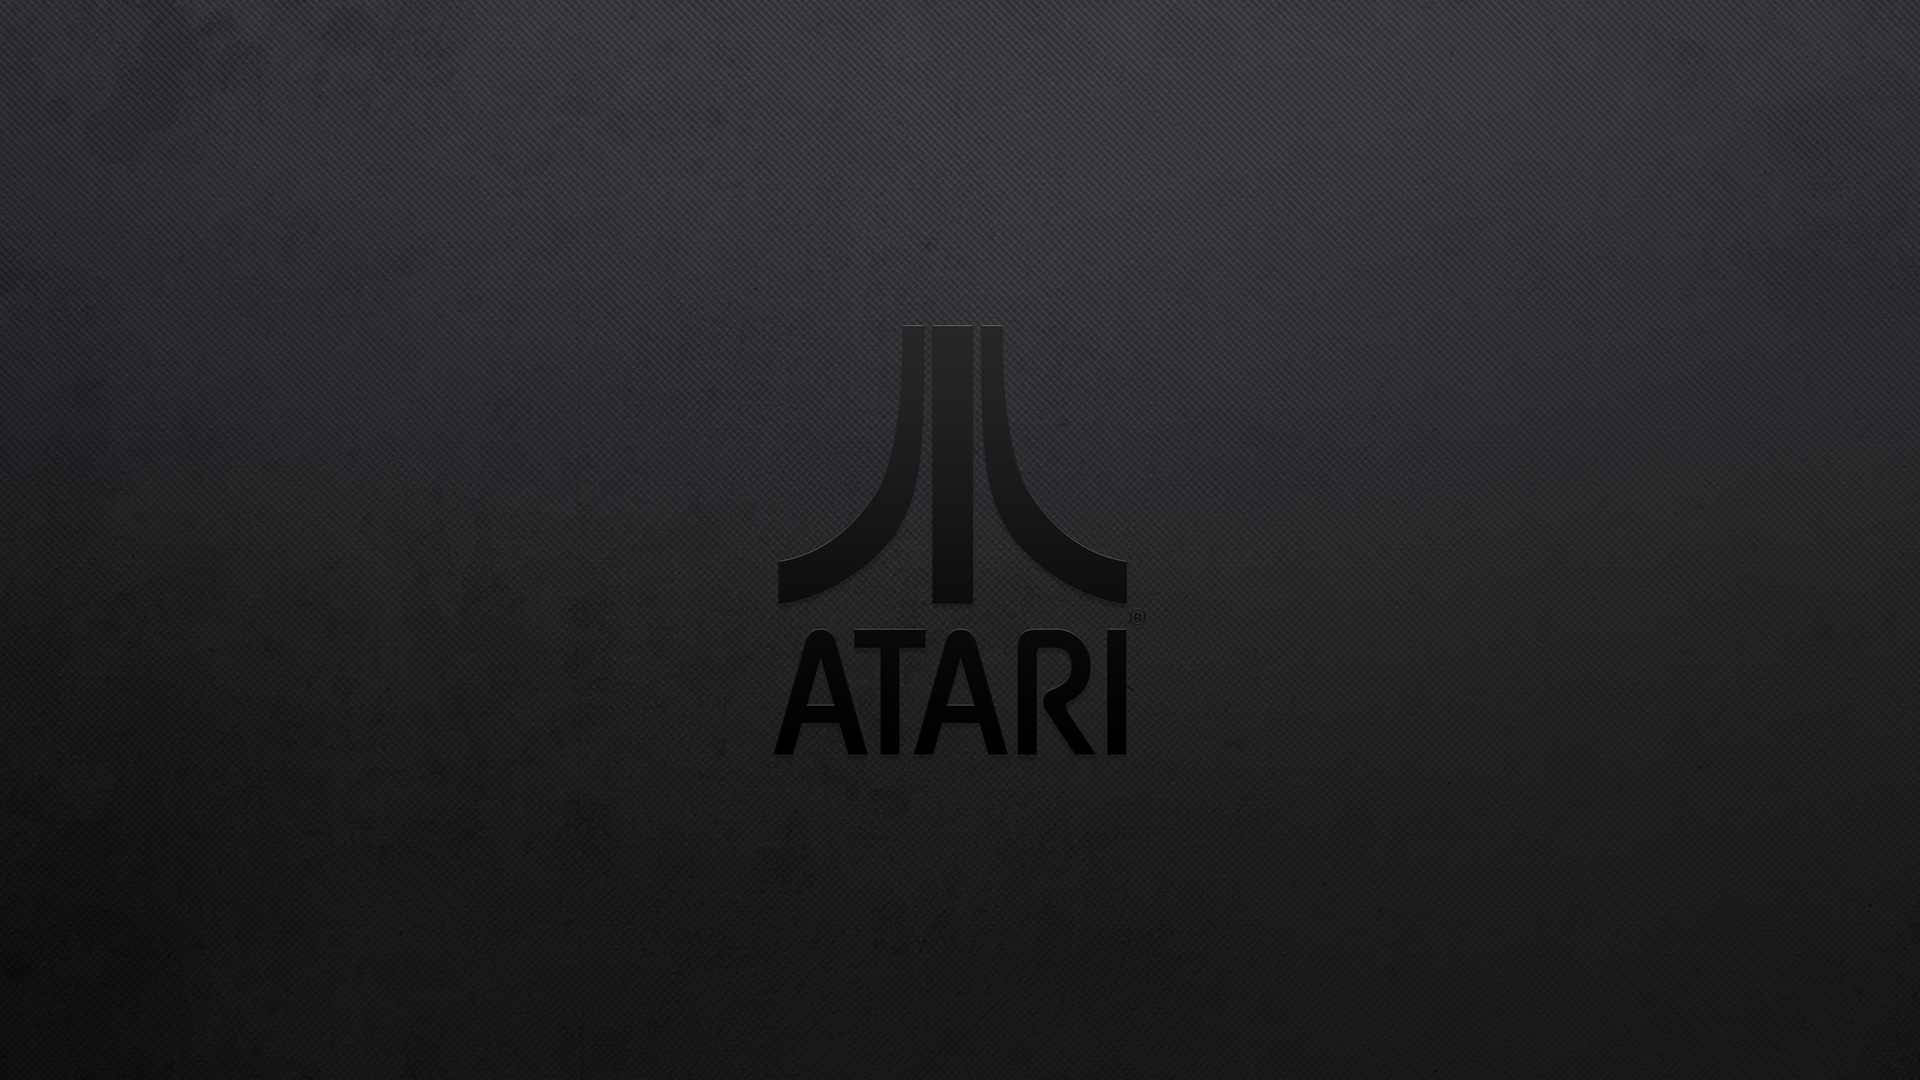 Views: 842 Atari Wallpaper 19614